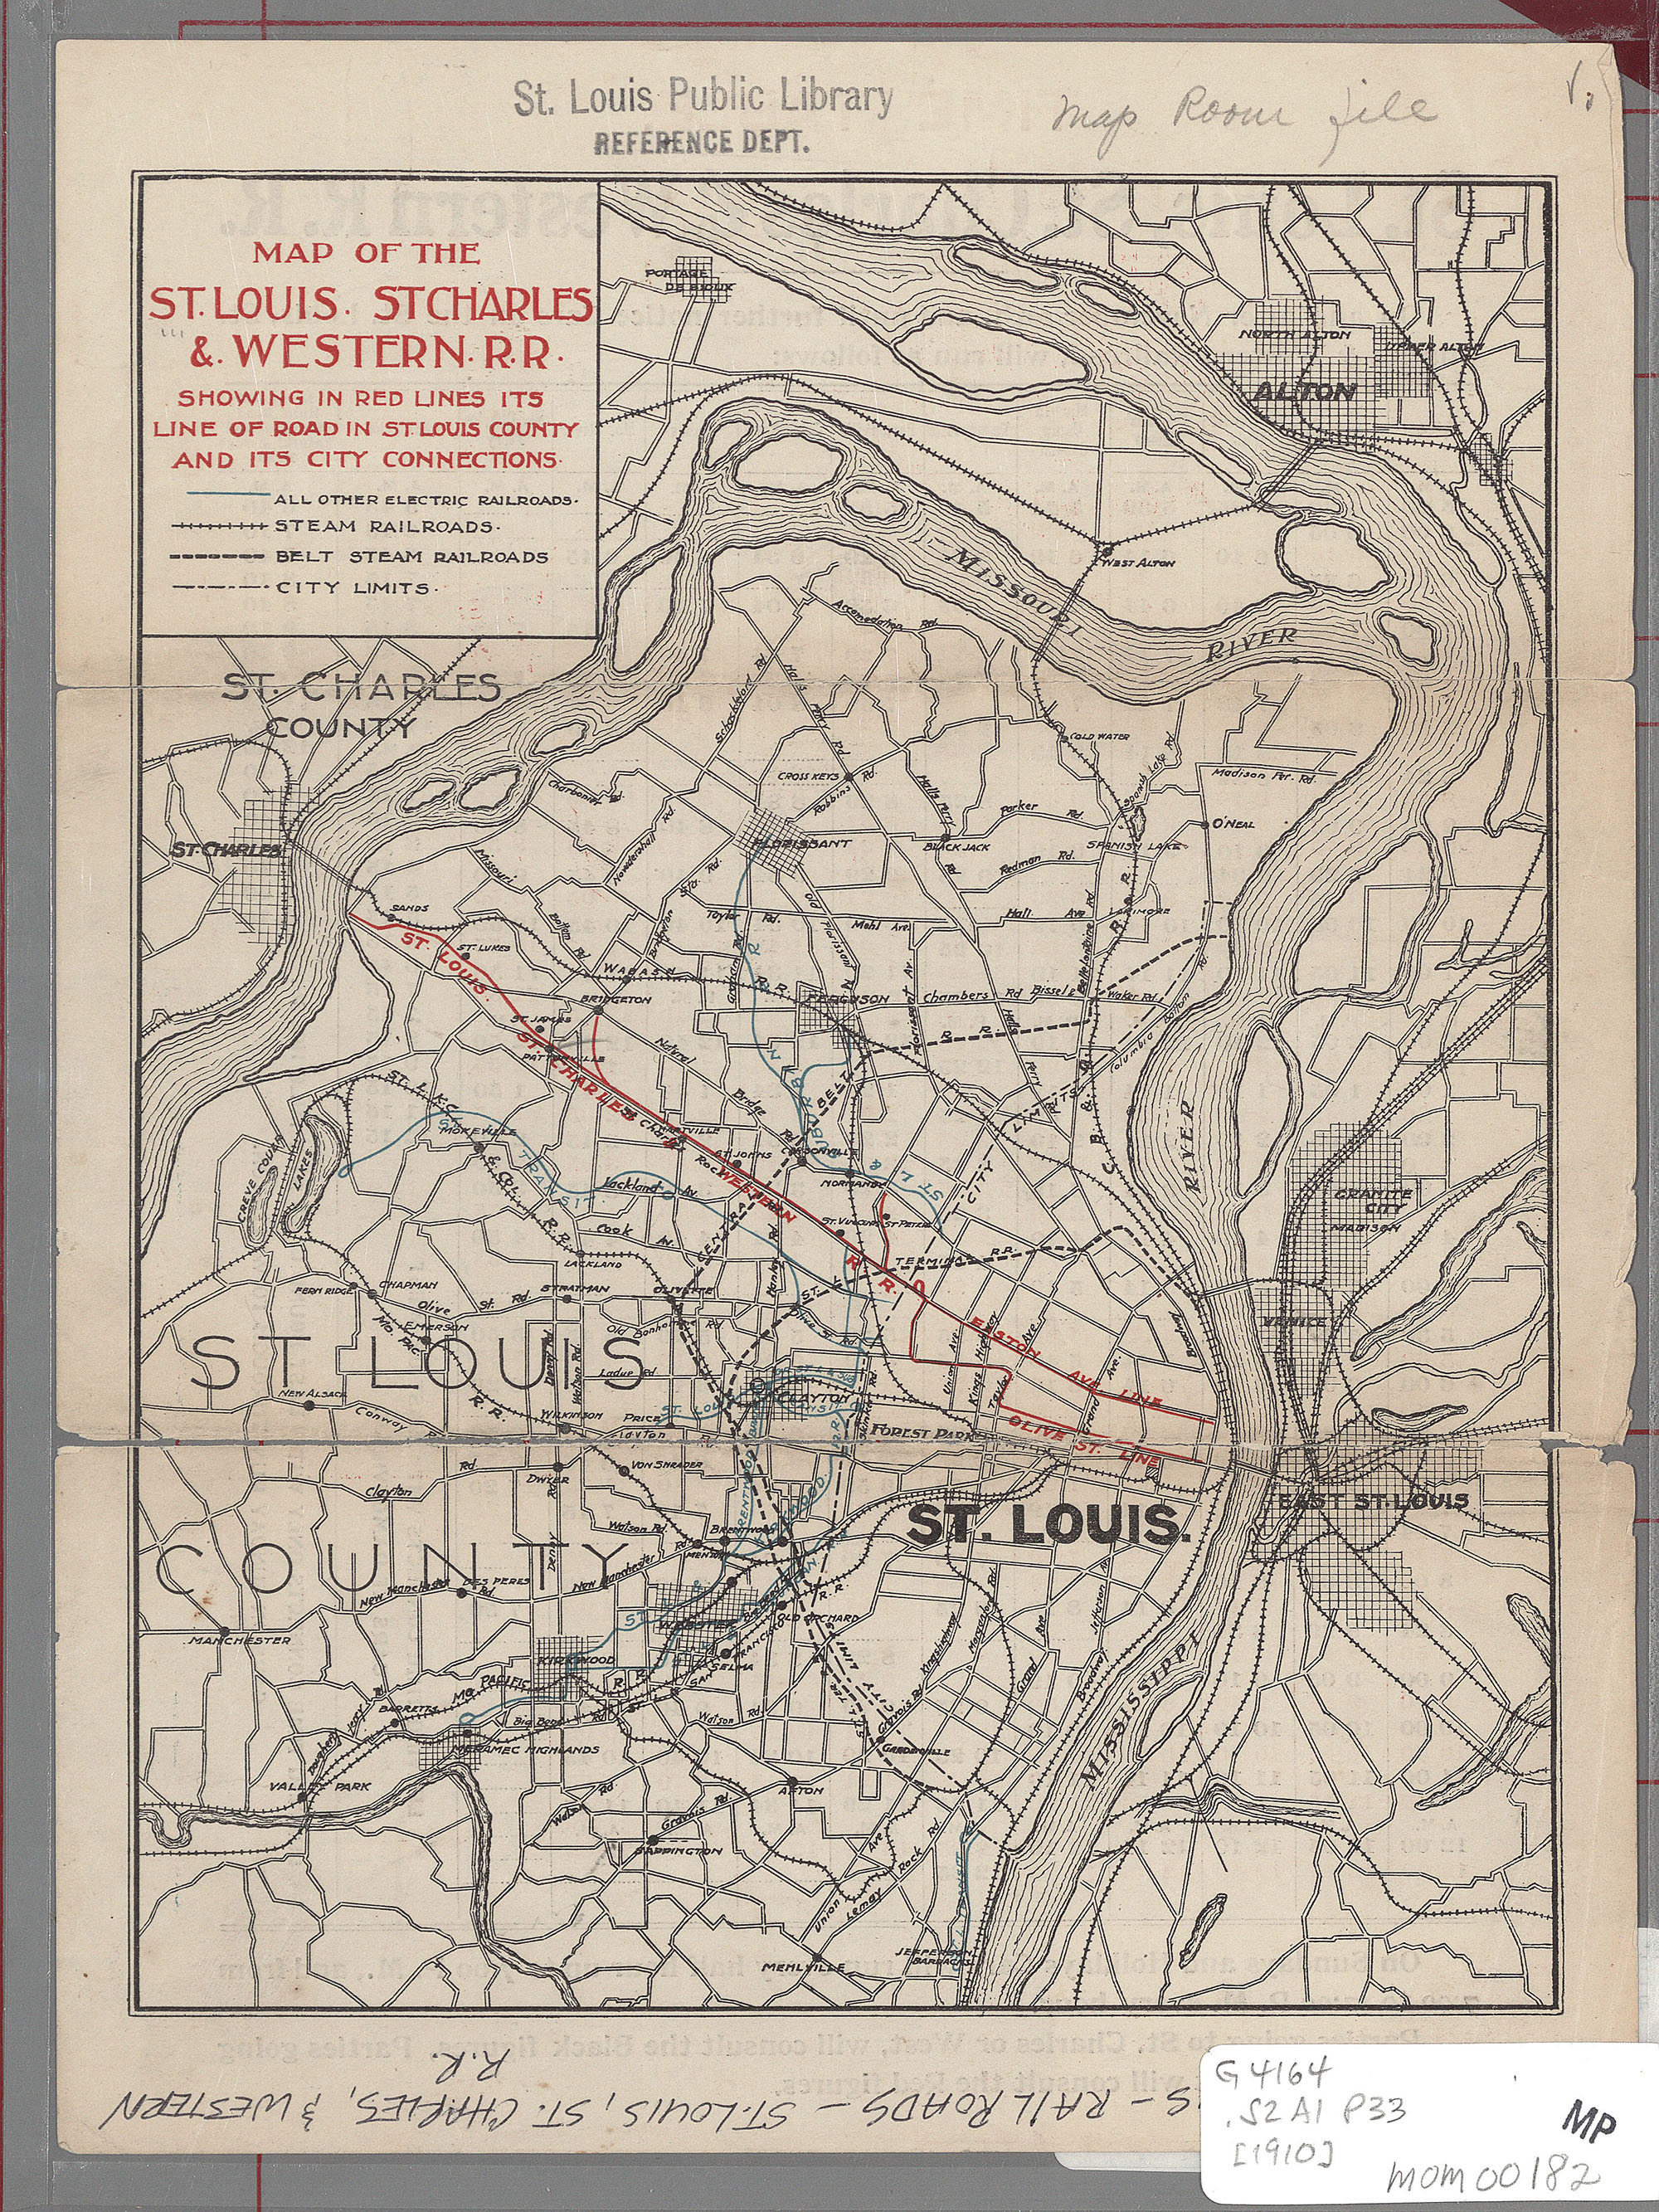 St. Louis Public Library - Maps of Missouri